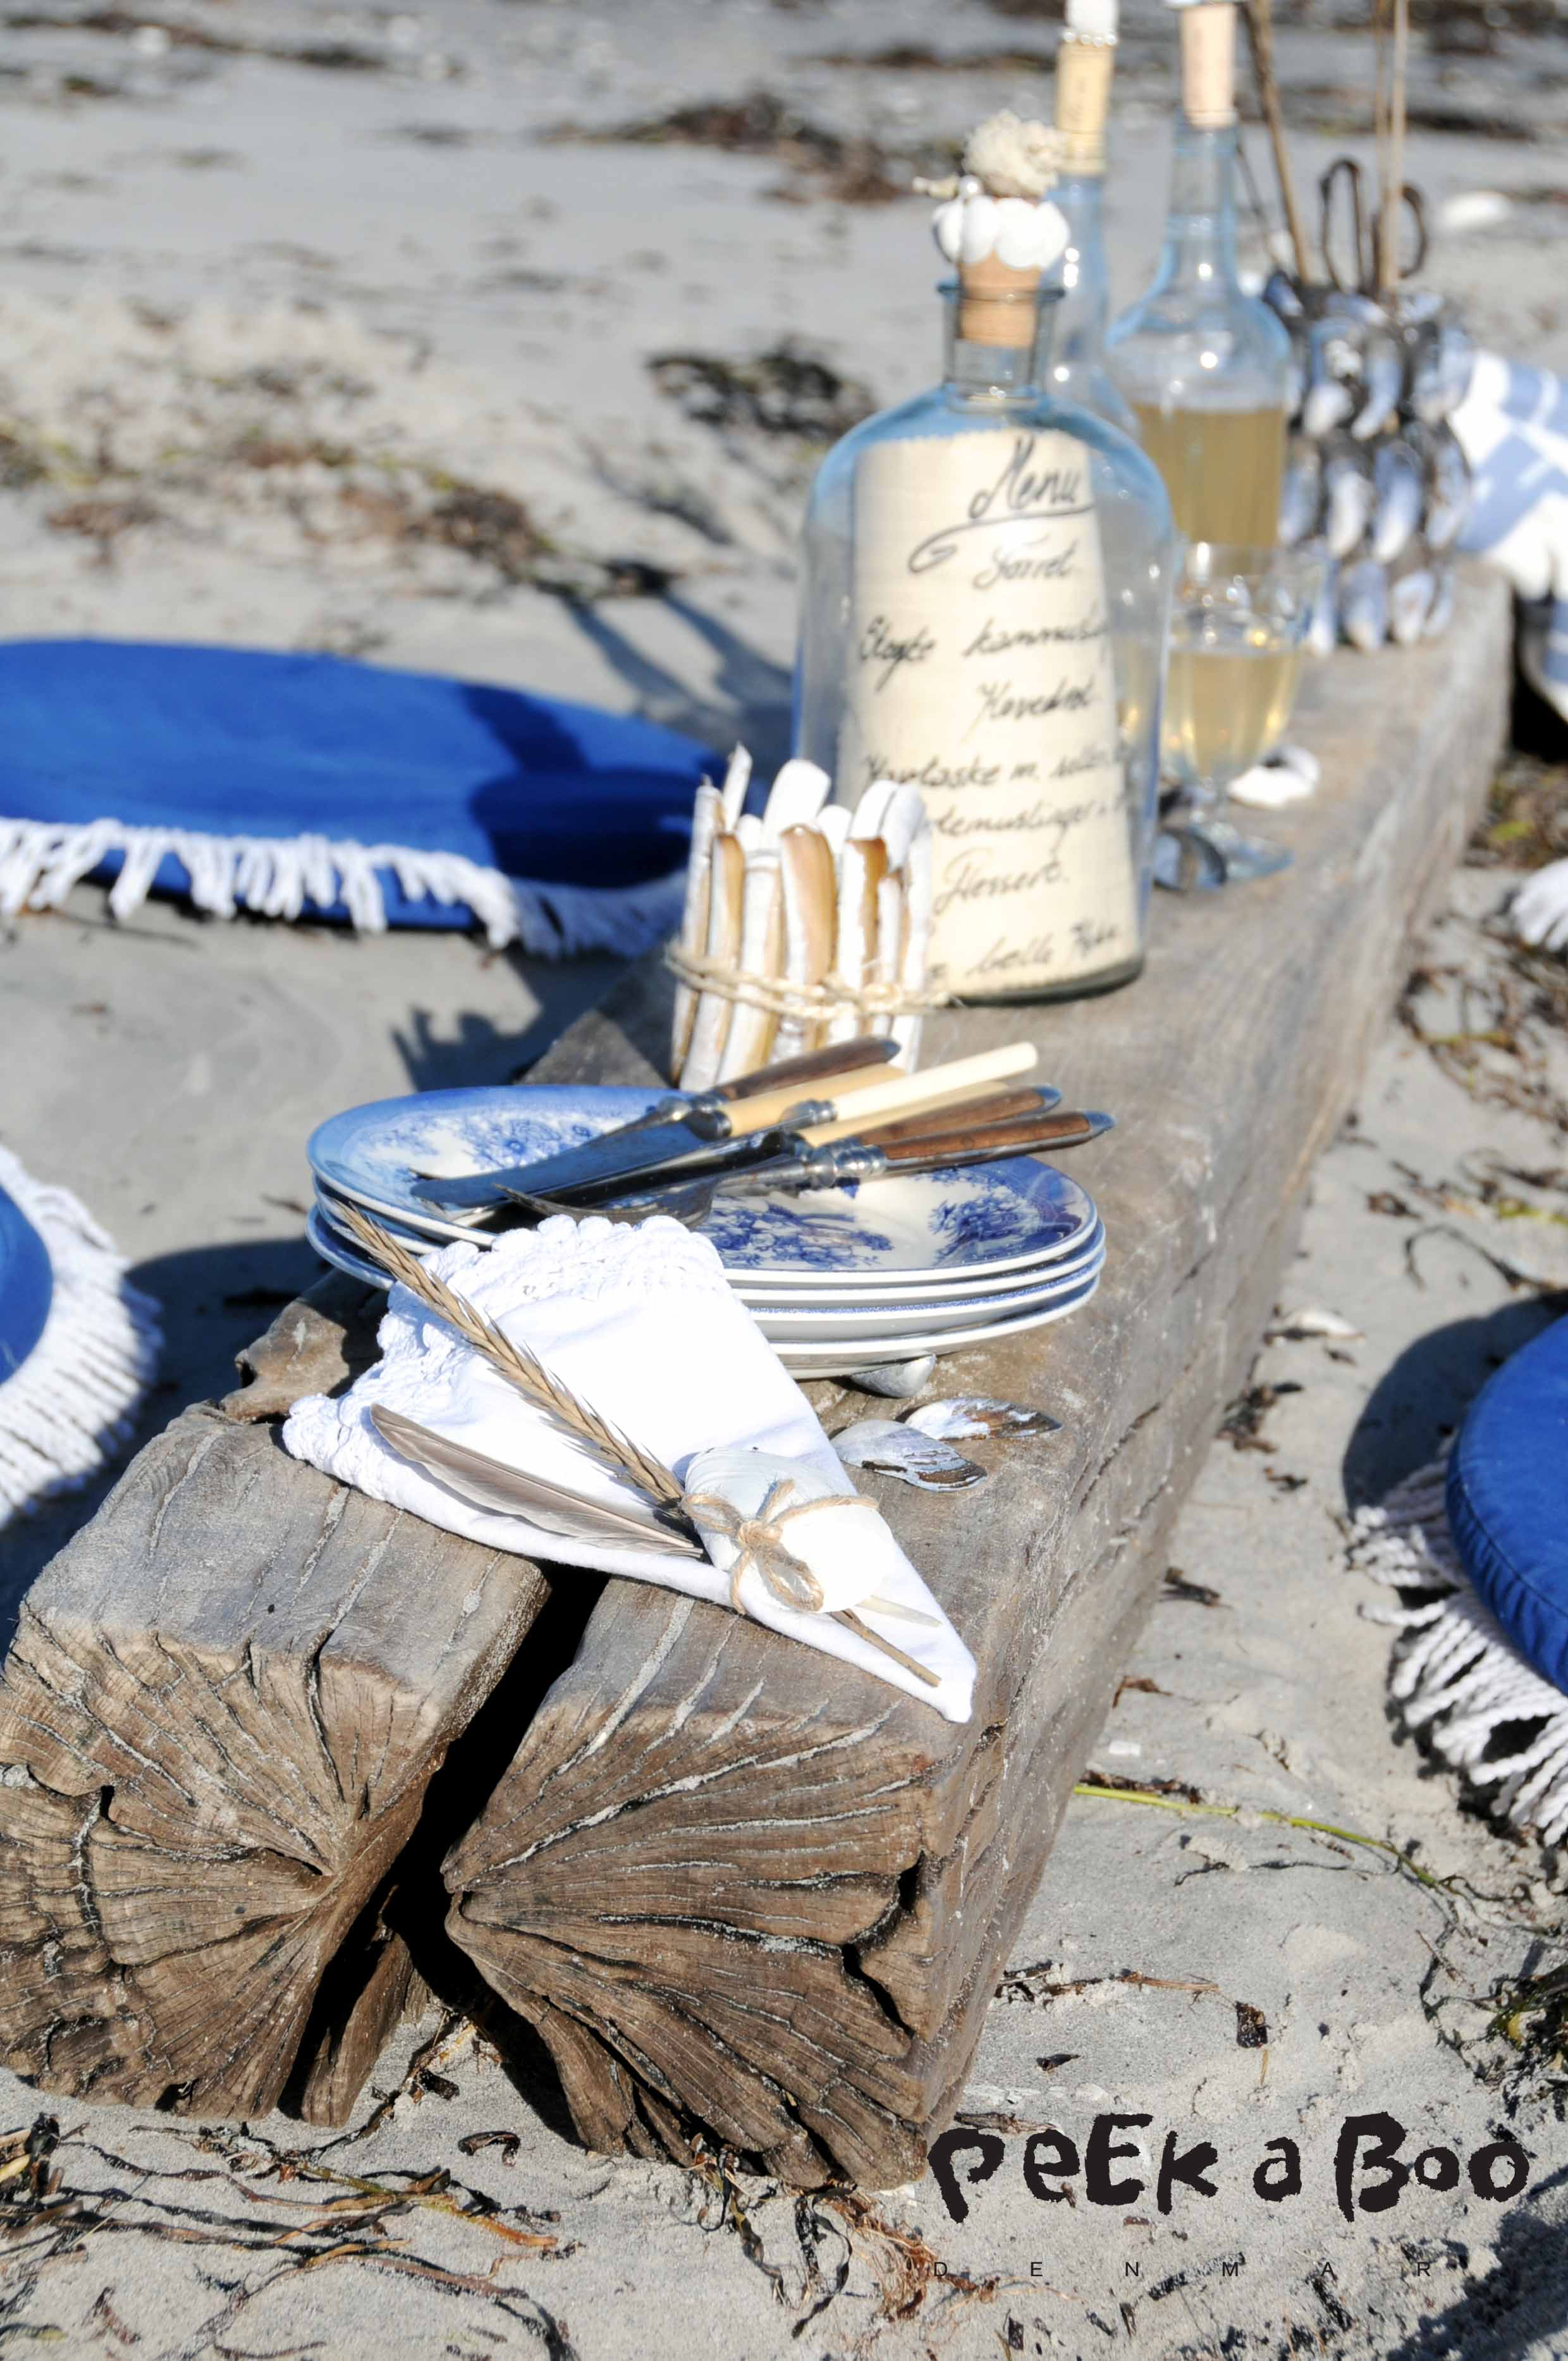 Beach party with lots of DIY ideas for cool decor by Peekaboo design.